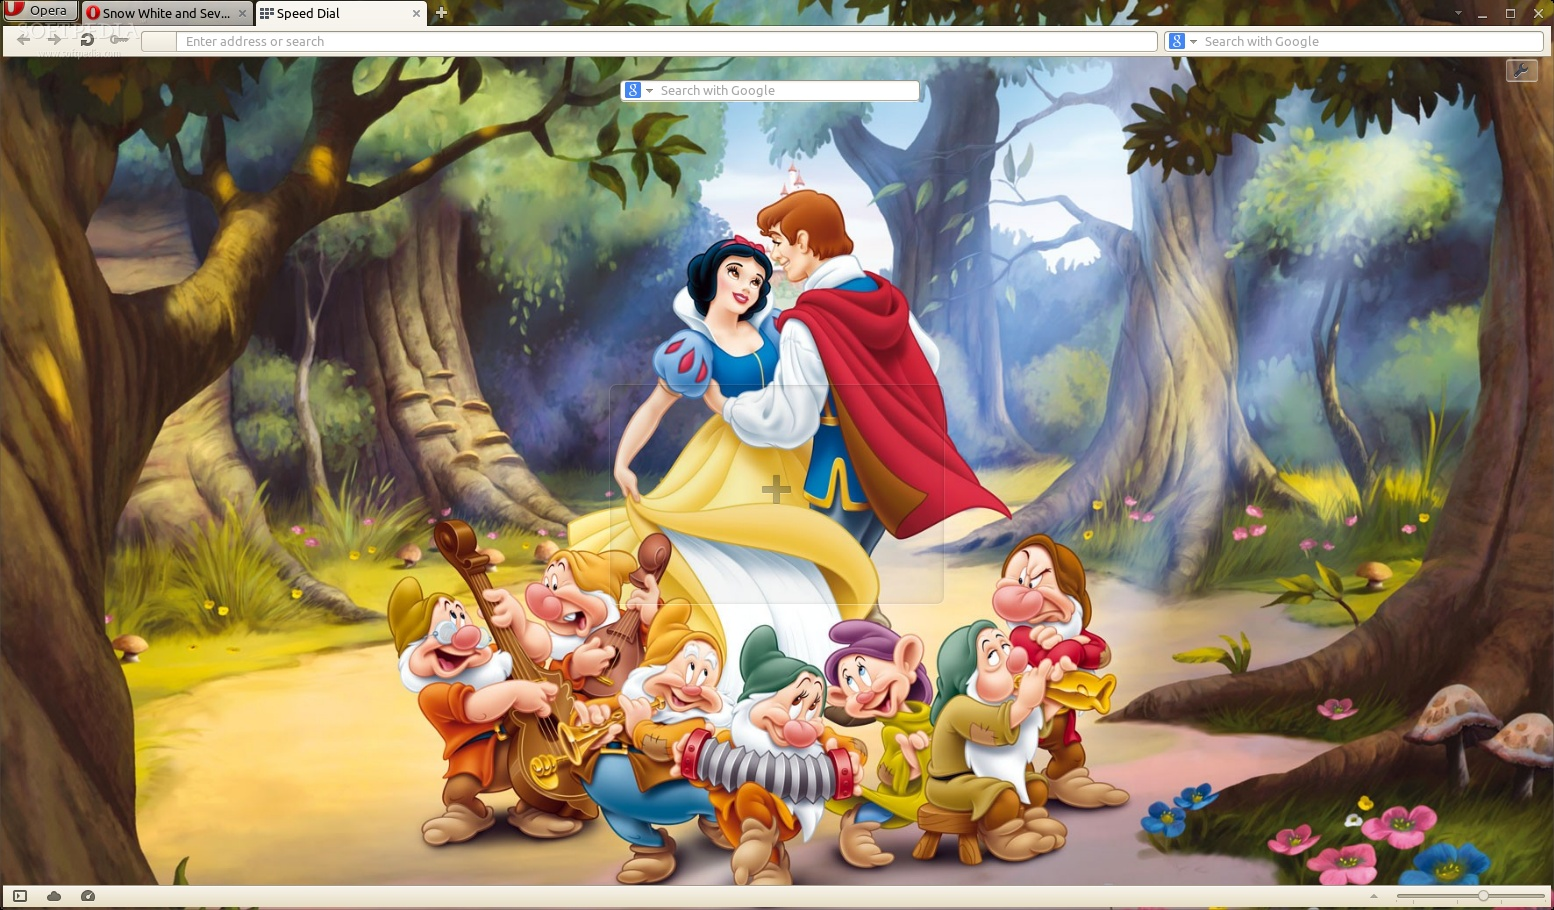 Snow white and the seven dwarfs nudity porn download